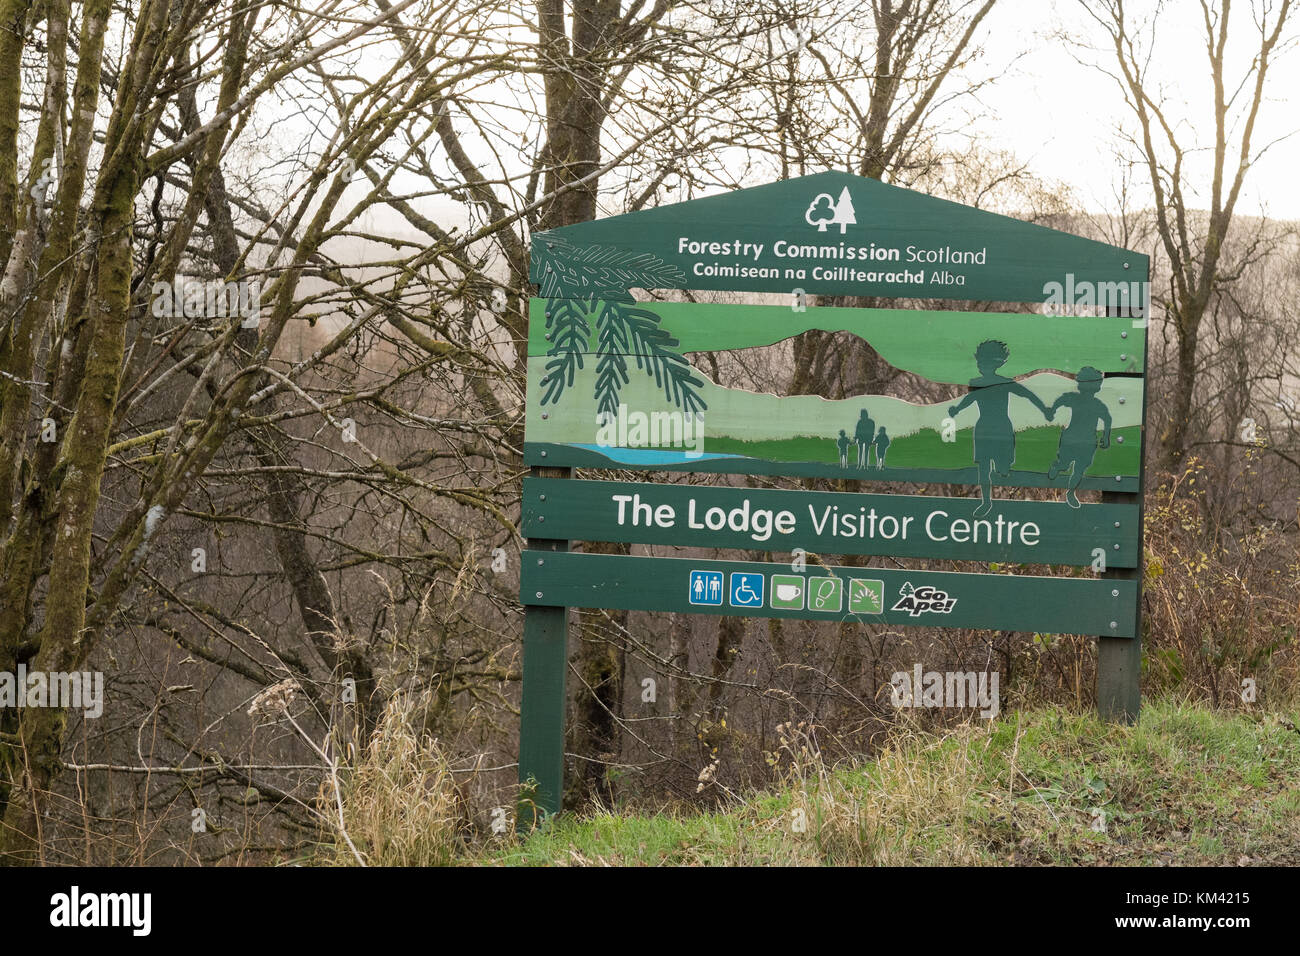 The Lodge Visitor Centre, Queen Elizabeth Forest Park sign, Aberfoyle, Scotland, UK - Stock Image